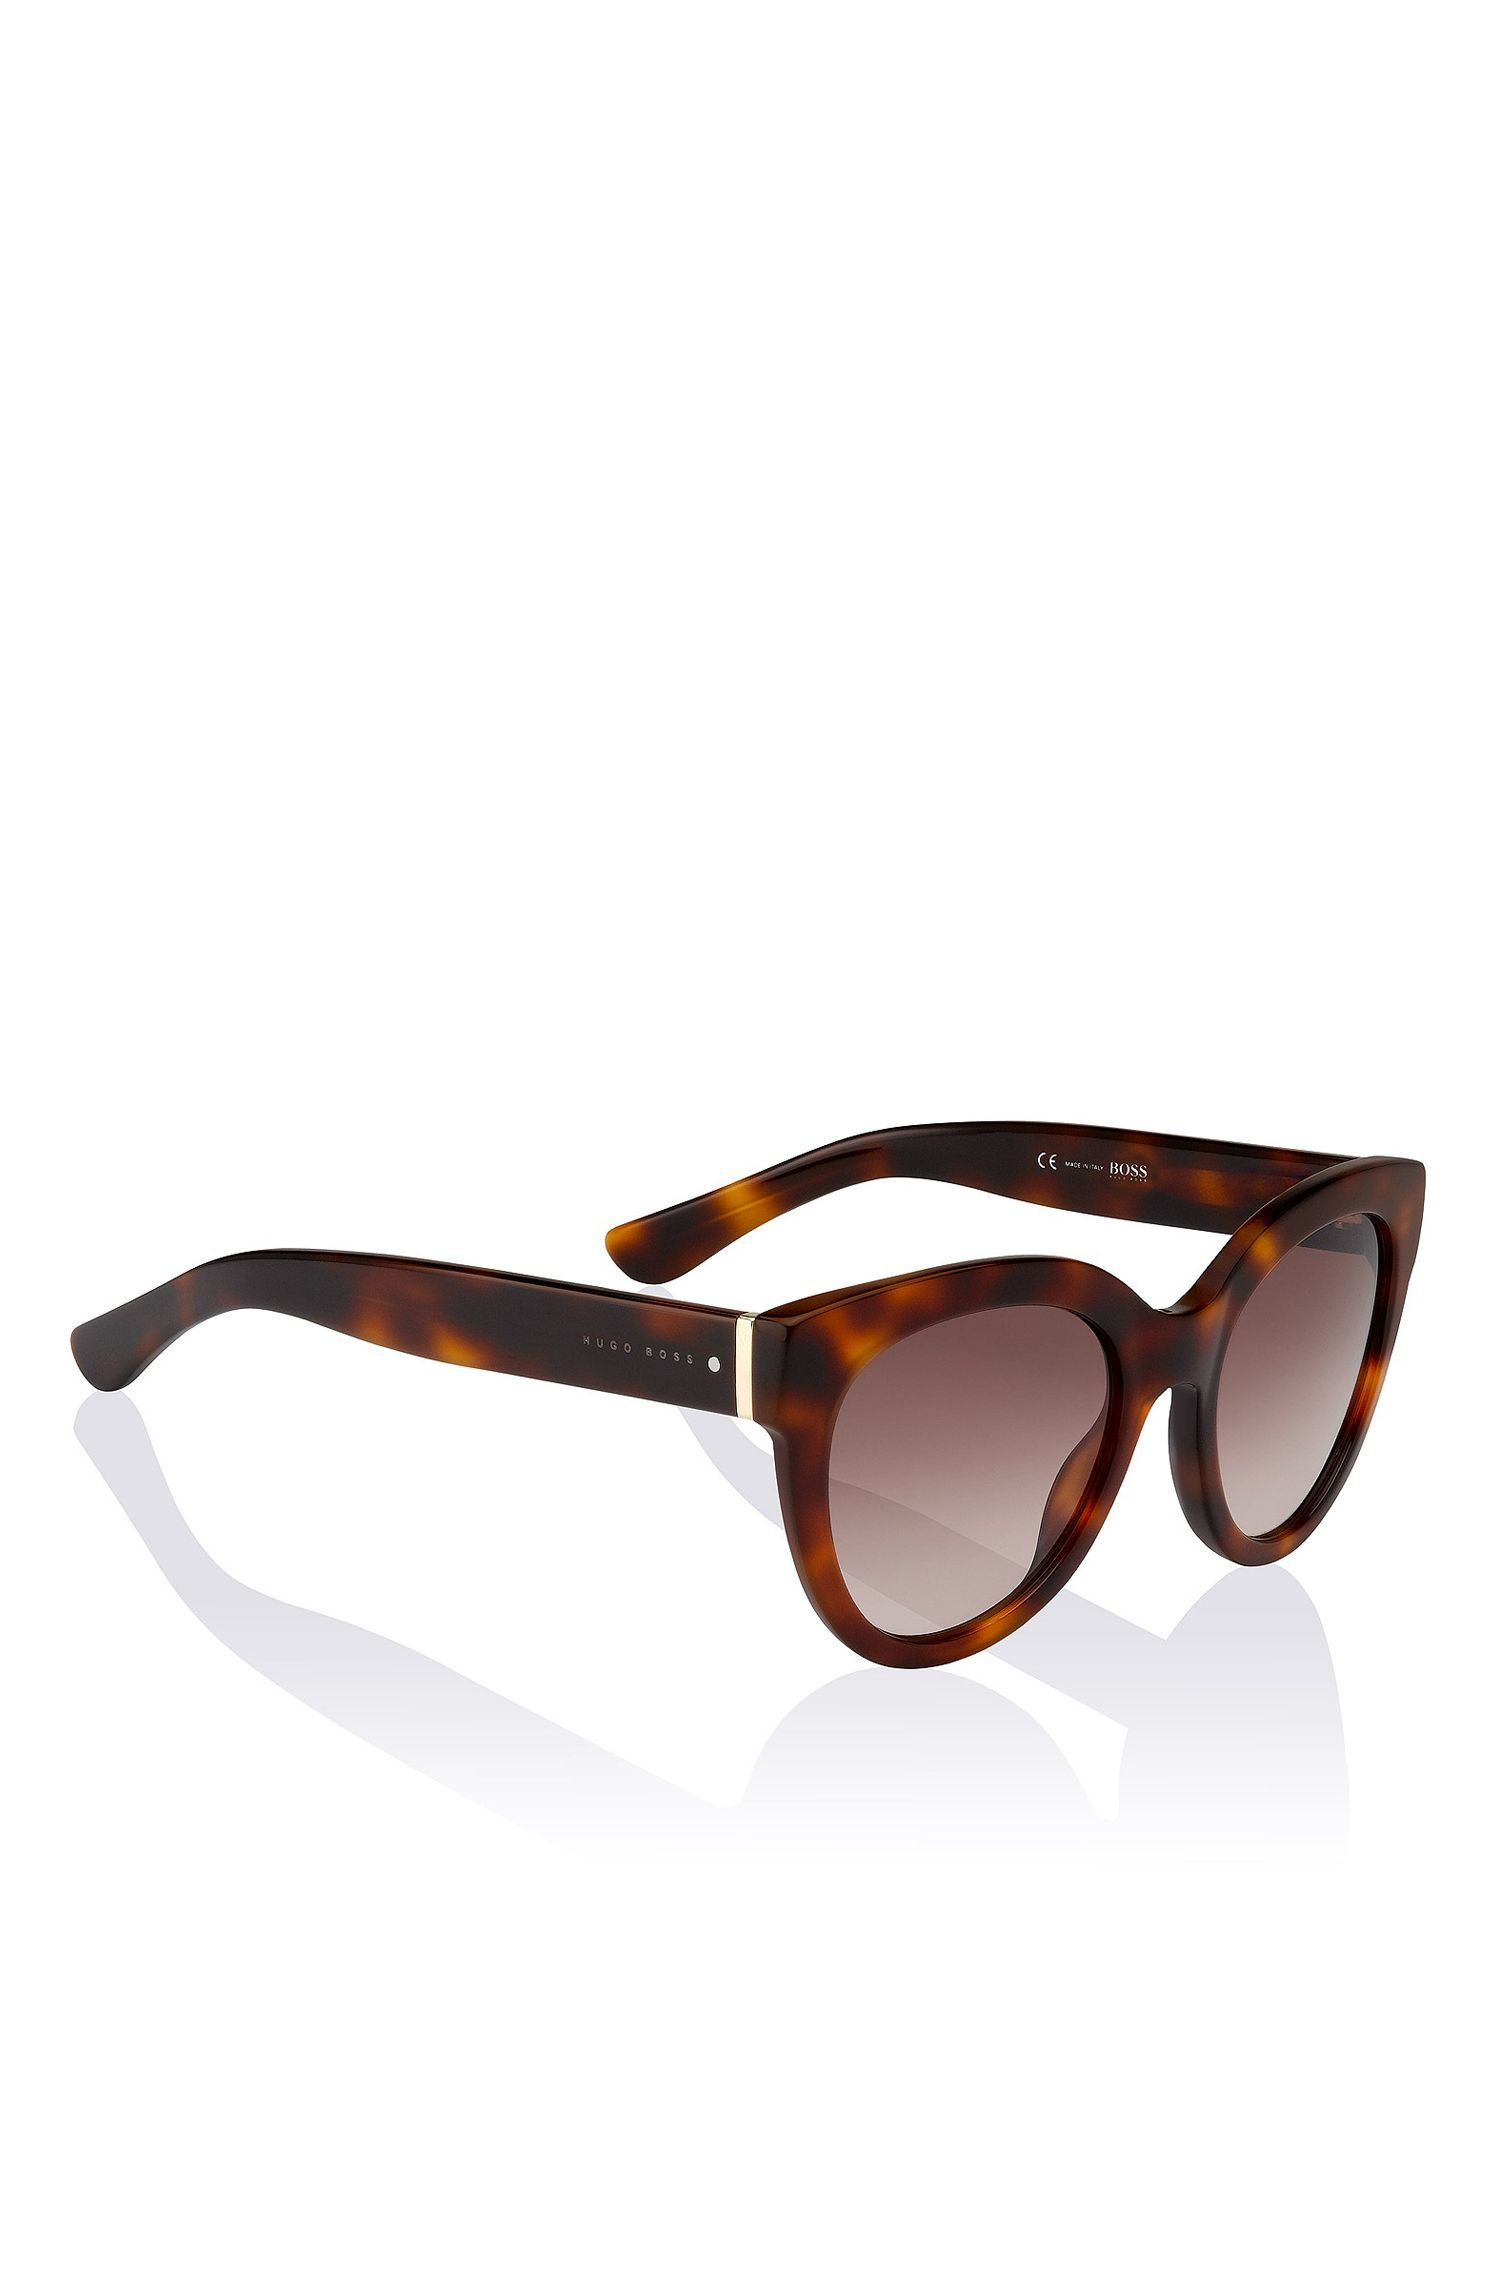 Gradient Lens Cateye Sunglasses | BOSS 0675S